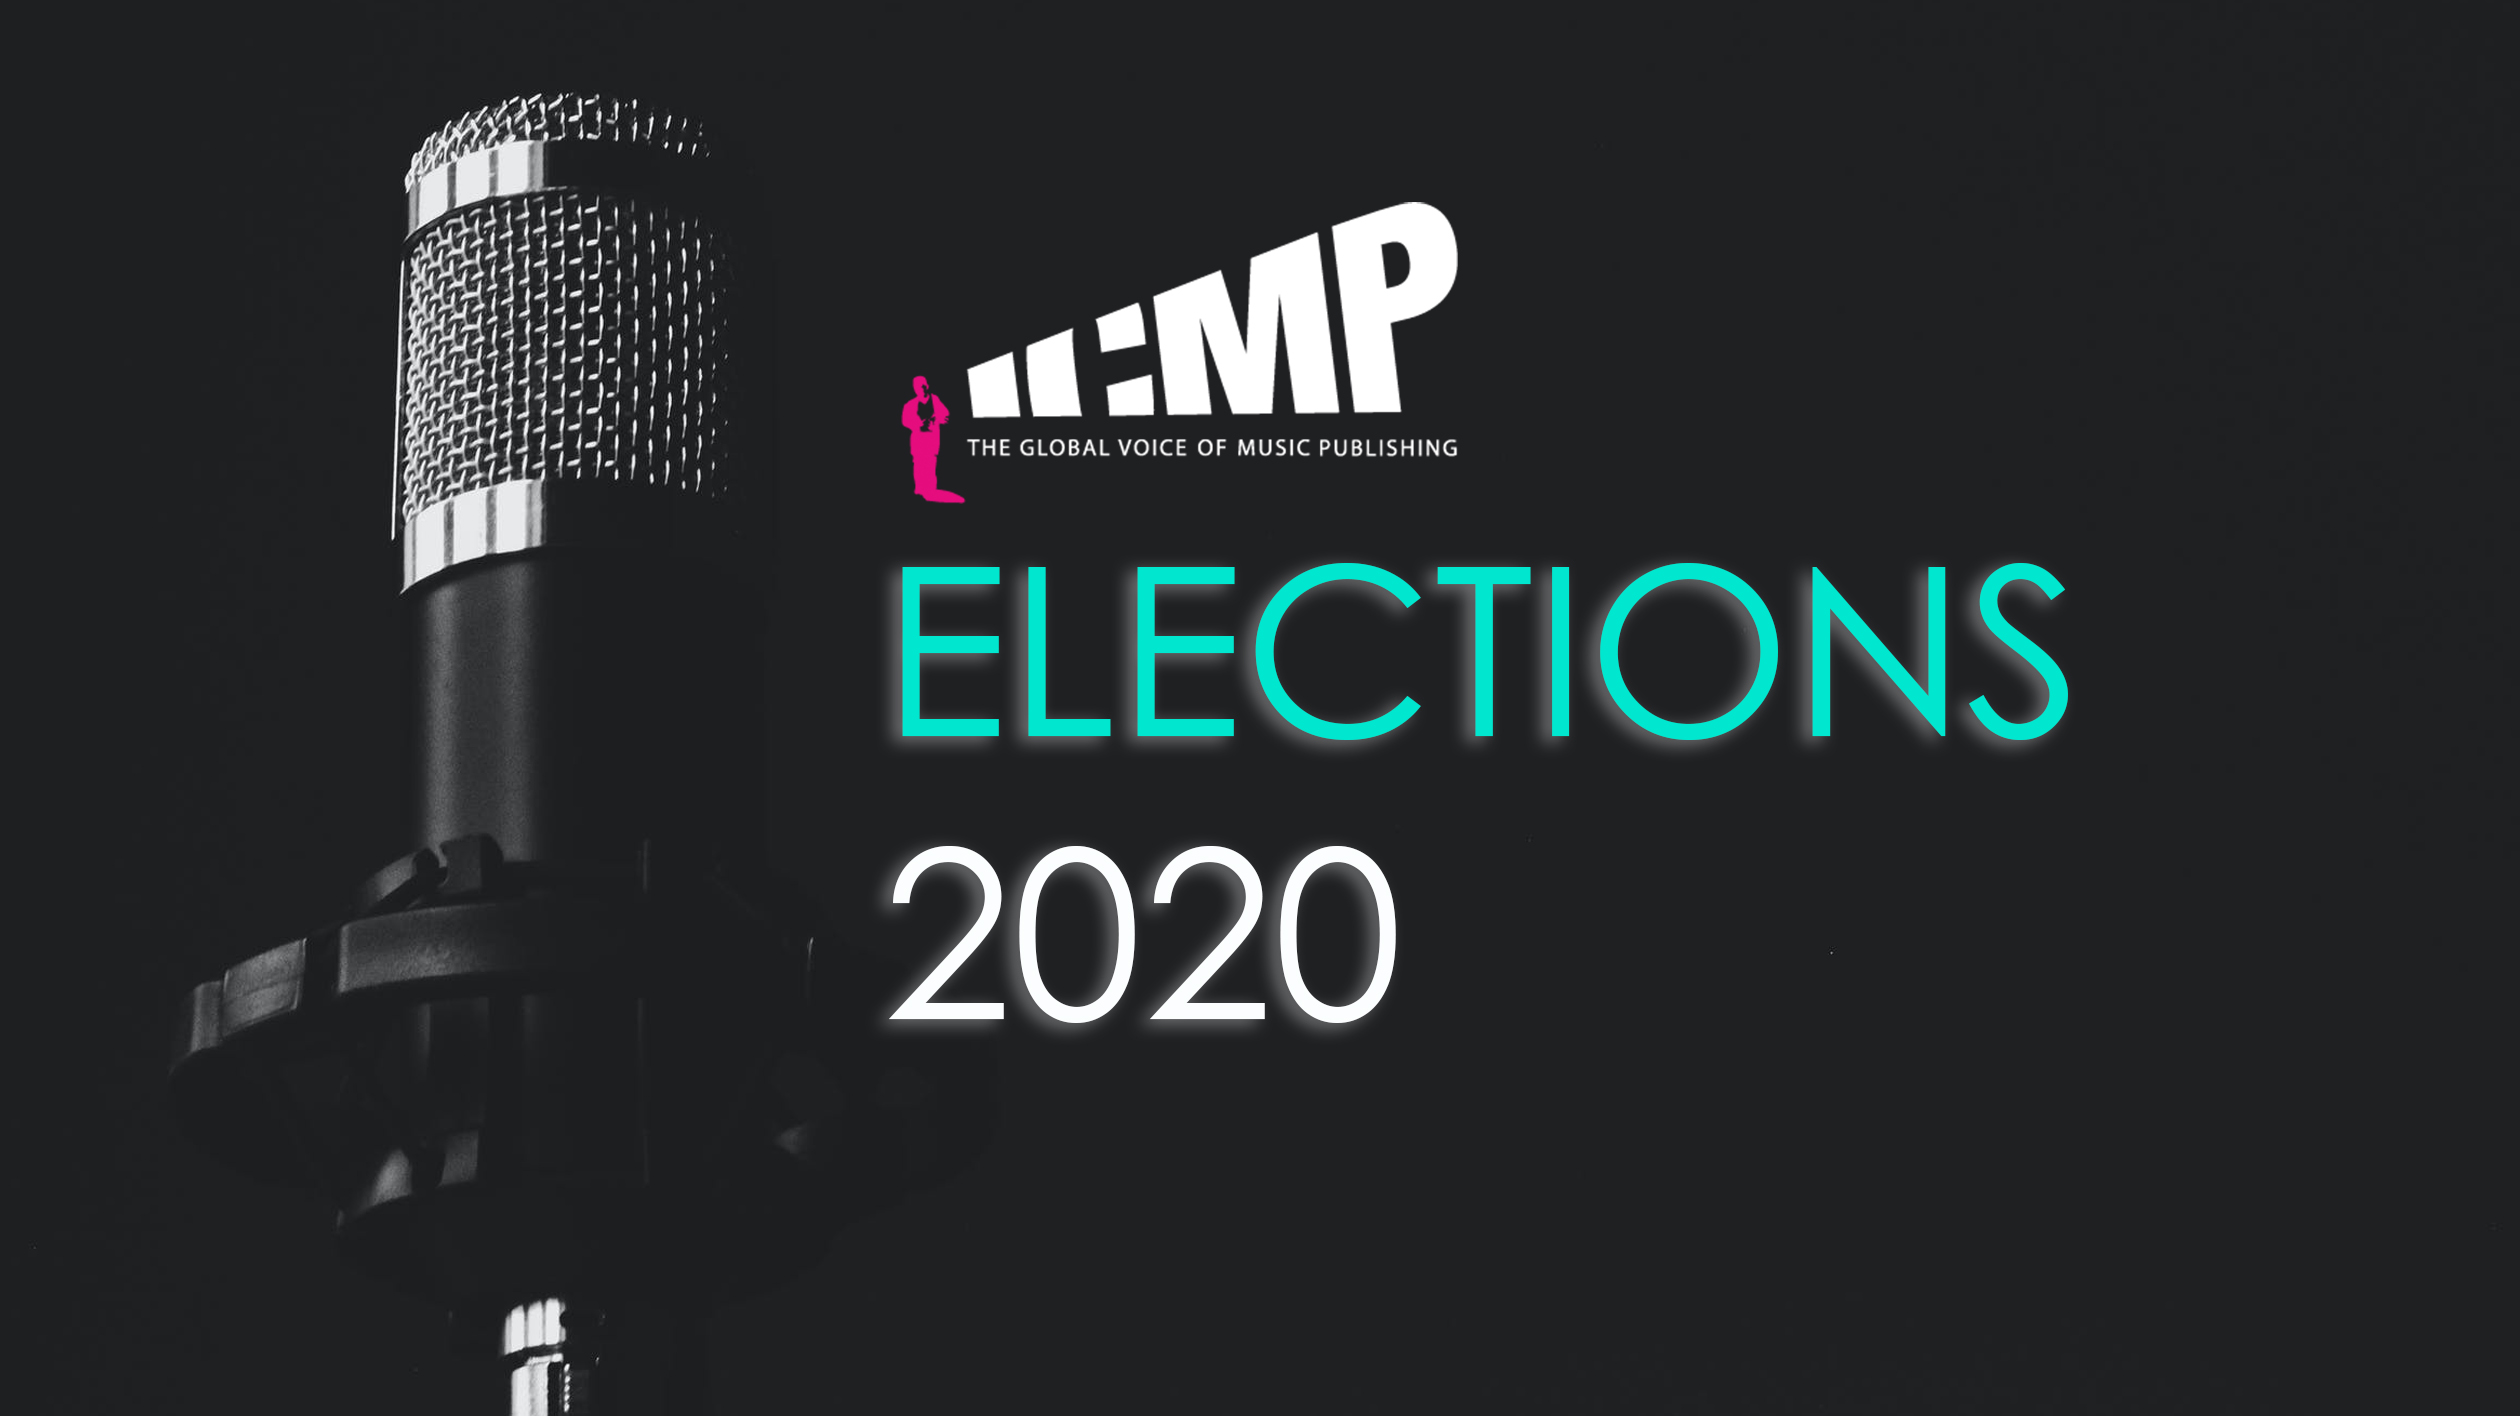 ICMP Elections 2020